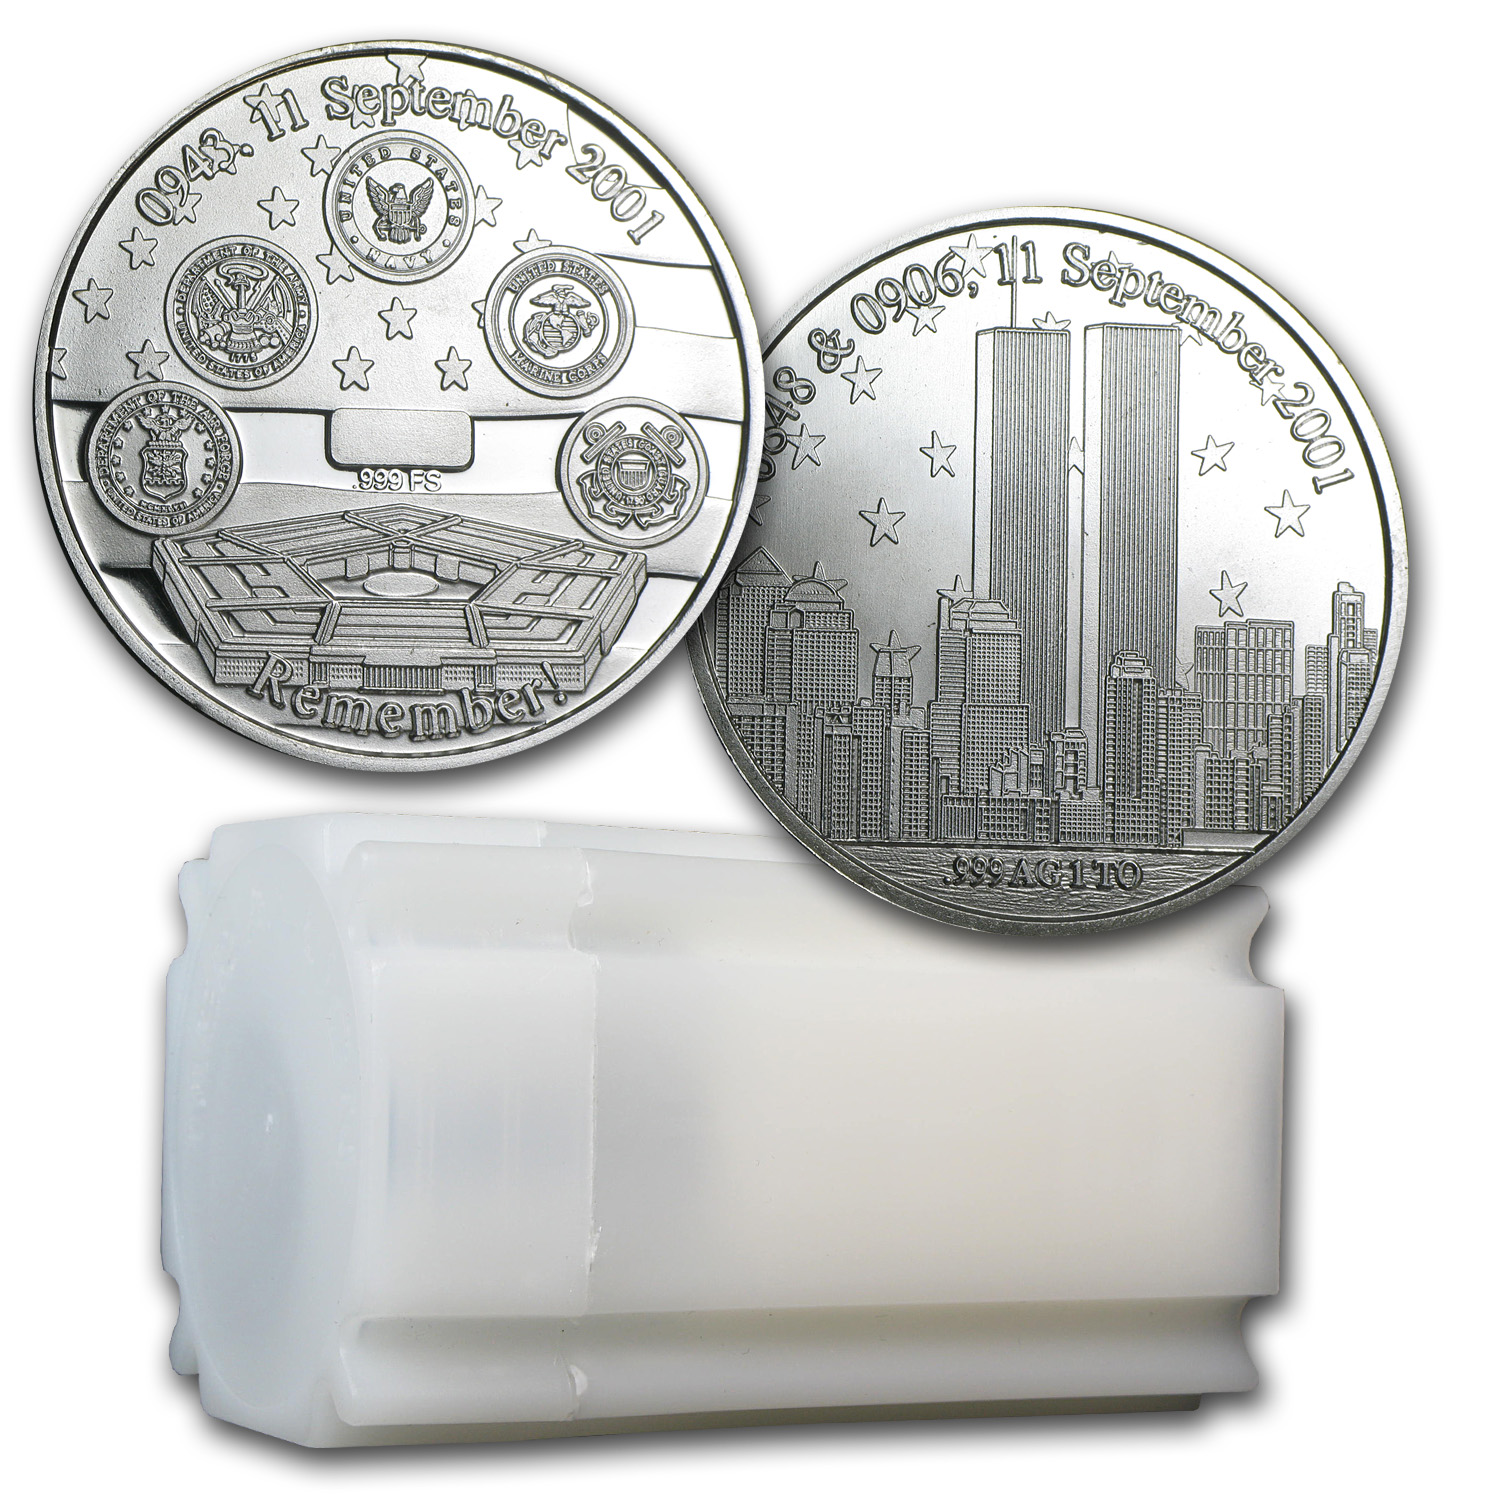 1 oz Silver Rounds - Remember! Twin Towers 9/11/2001